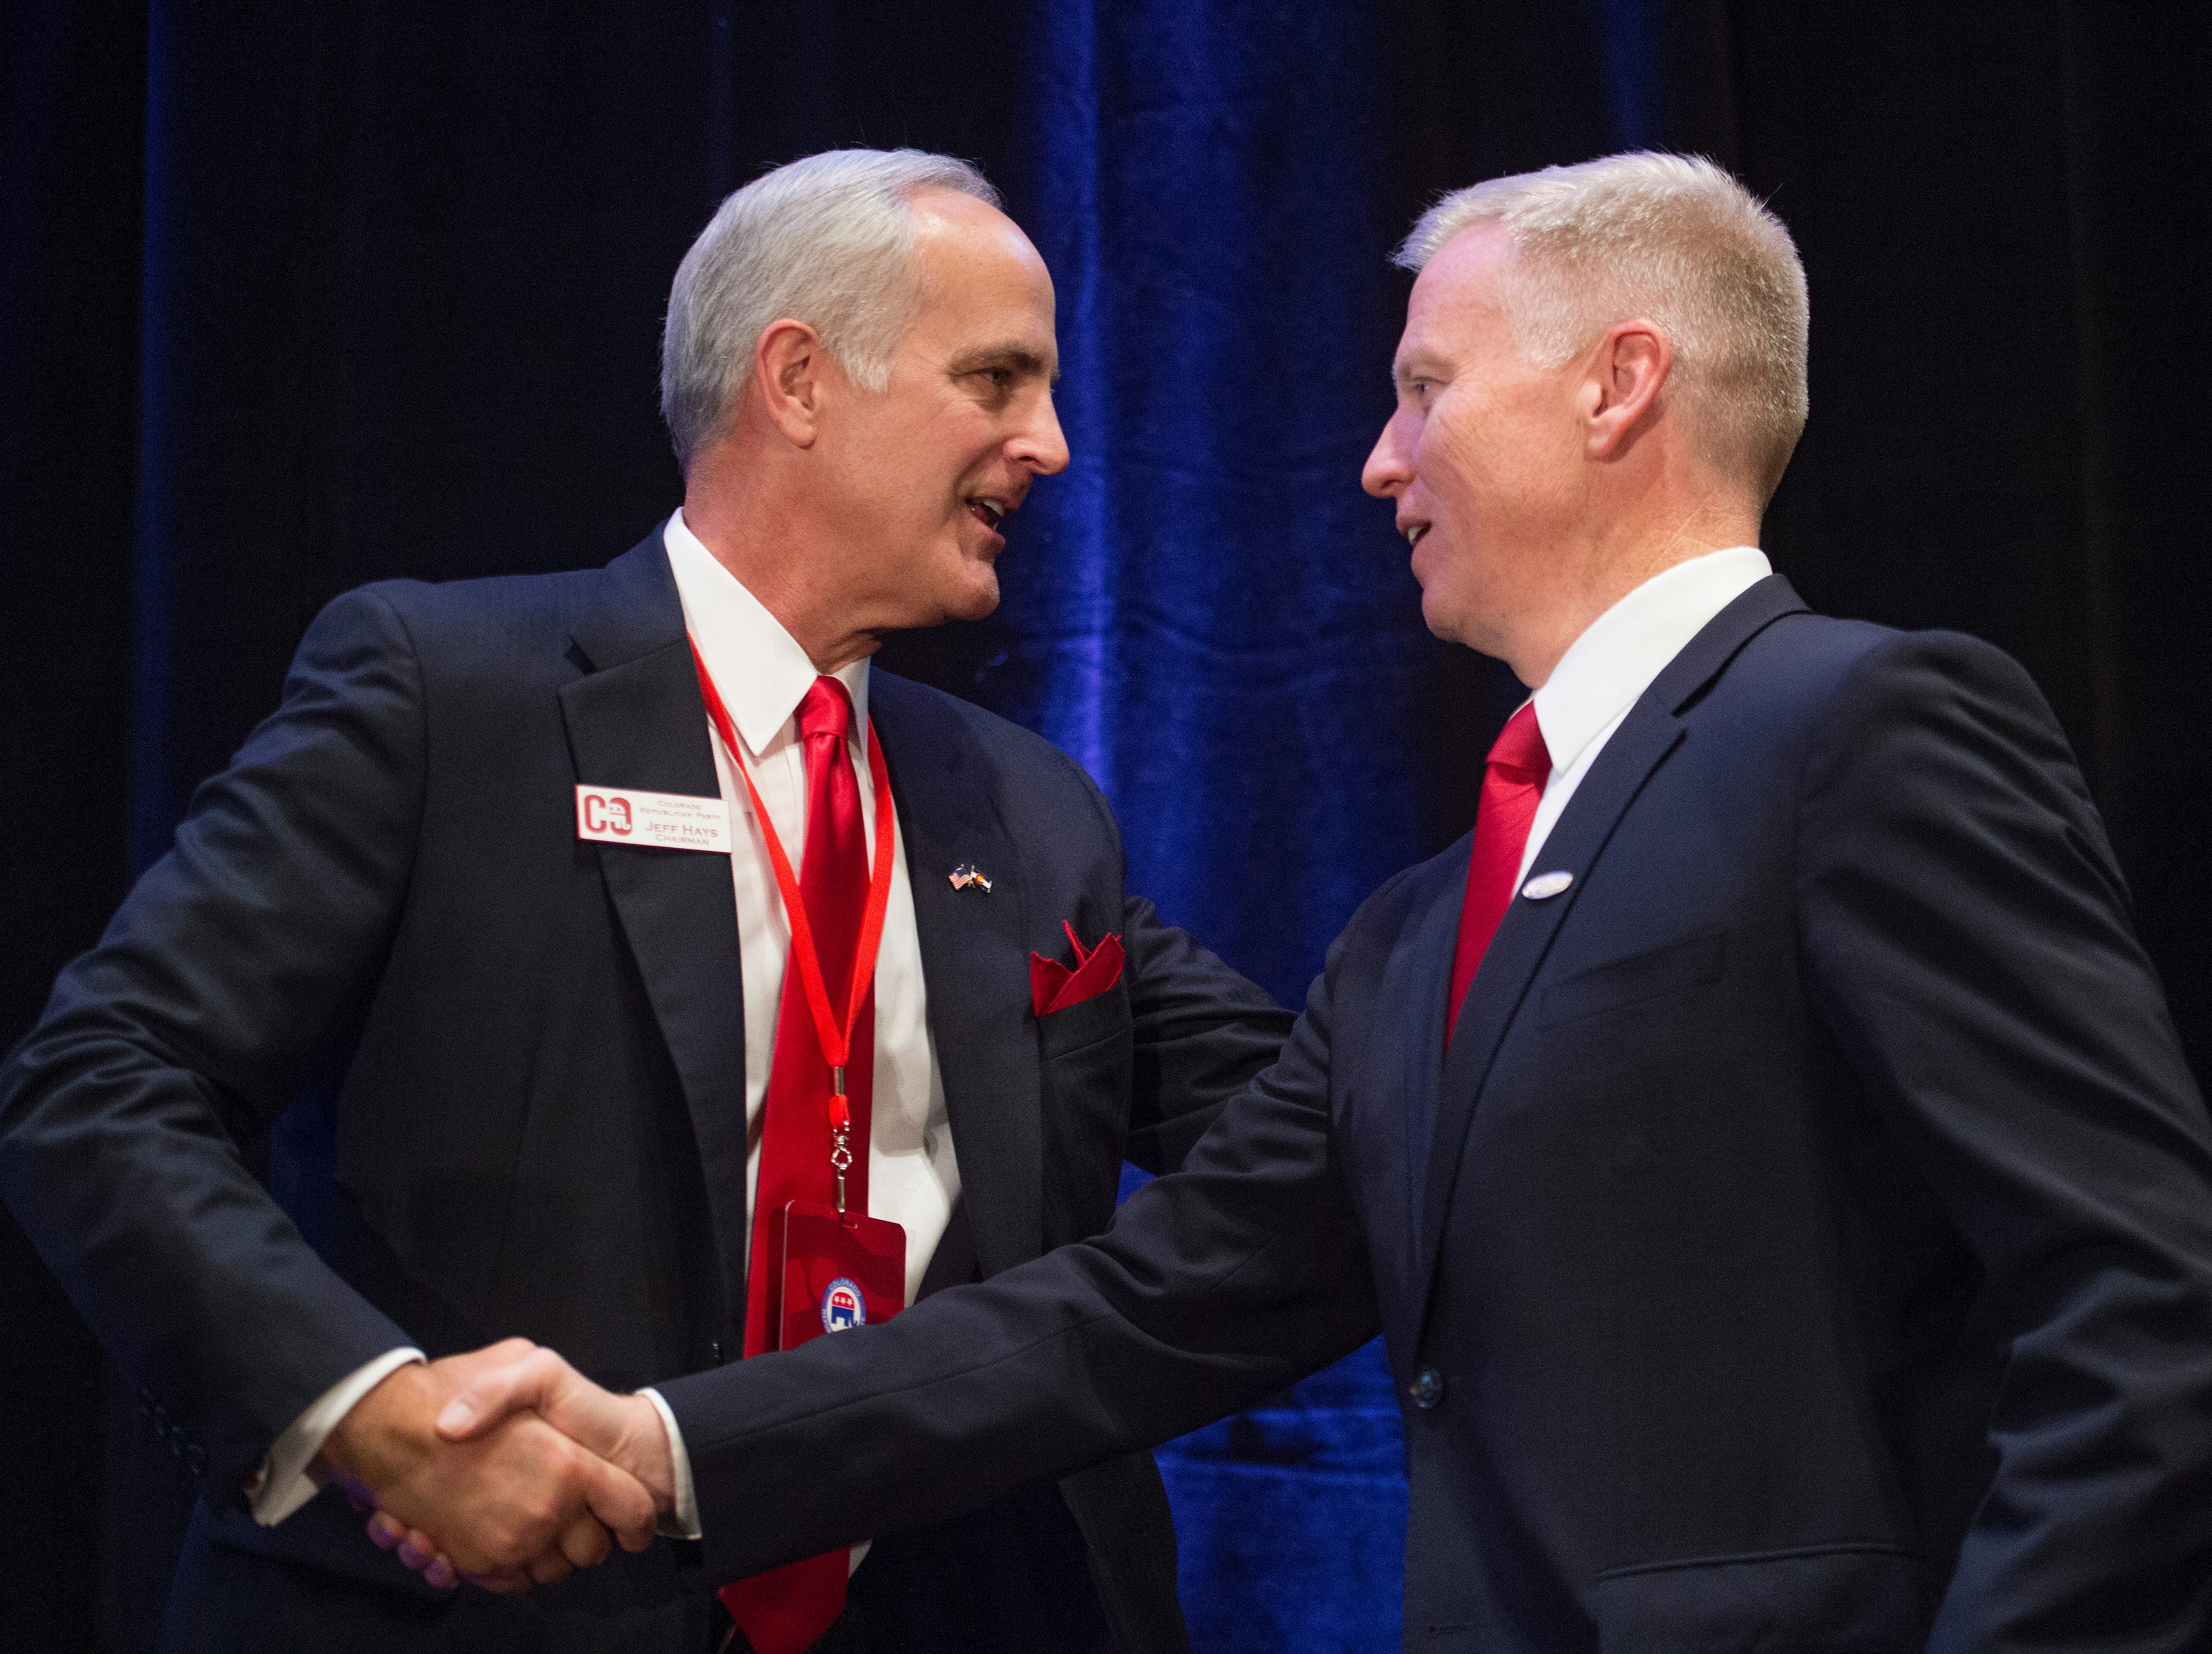 Colorado GOP chairman Jeff Hays shakes the hand of Colorado attorney general candidate George Brauchler before he speaks during a Colorado GOP watch party at the Denver Marriott South at Park Meadows in Lone Tree on Election Day, Tuesday, November 6, 2018.